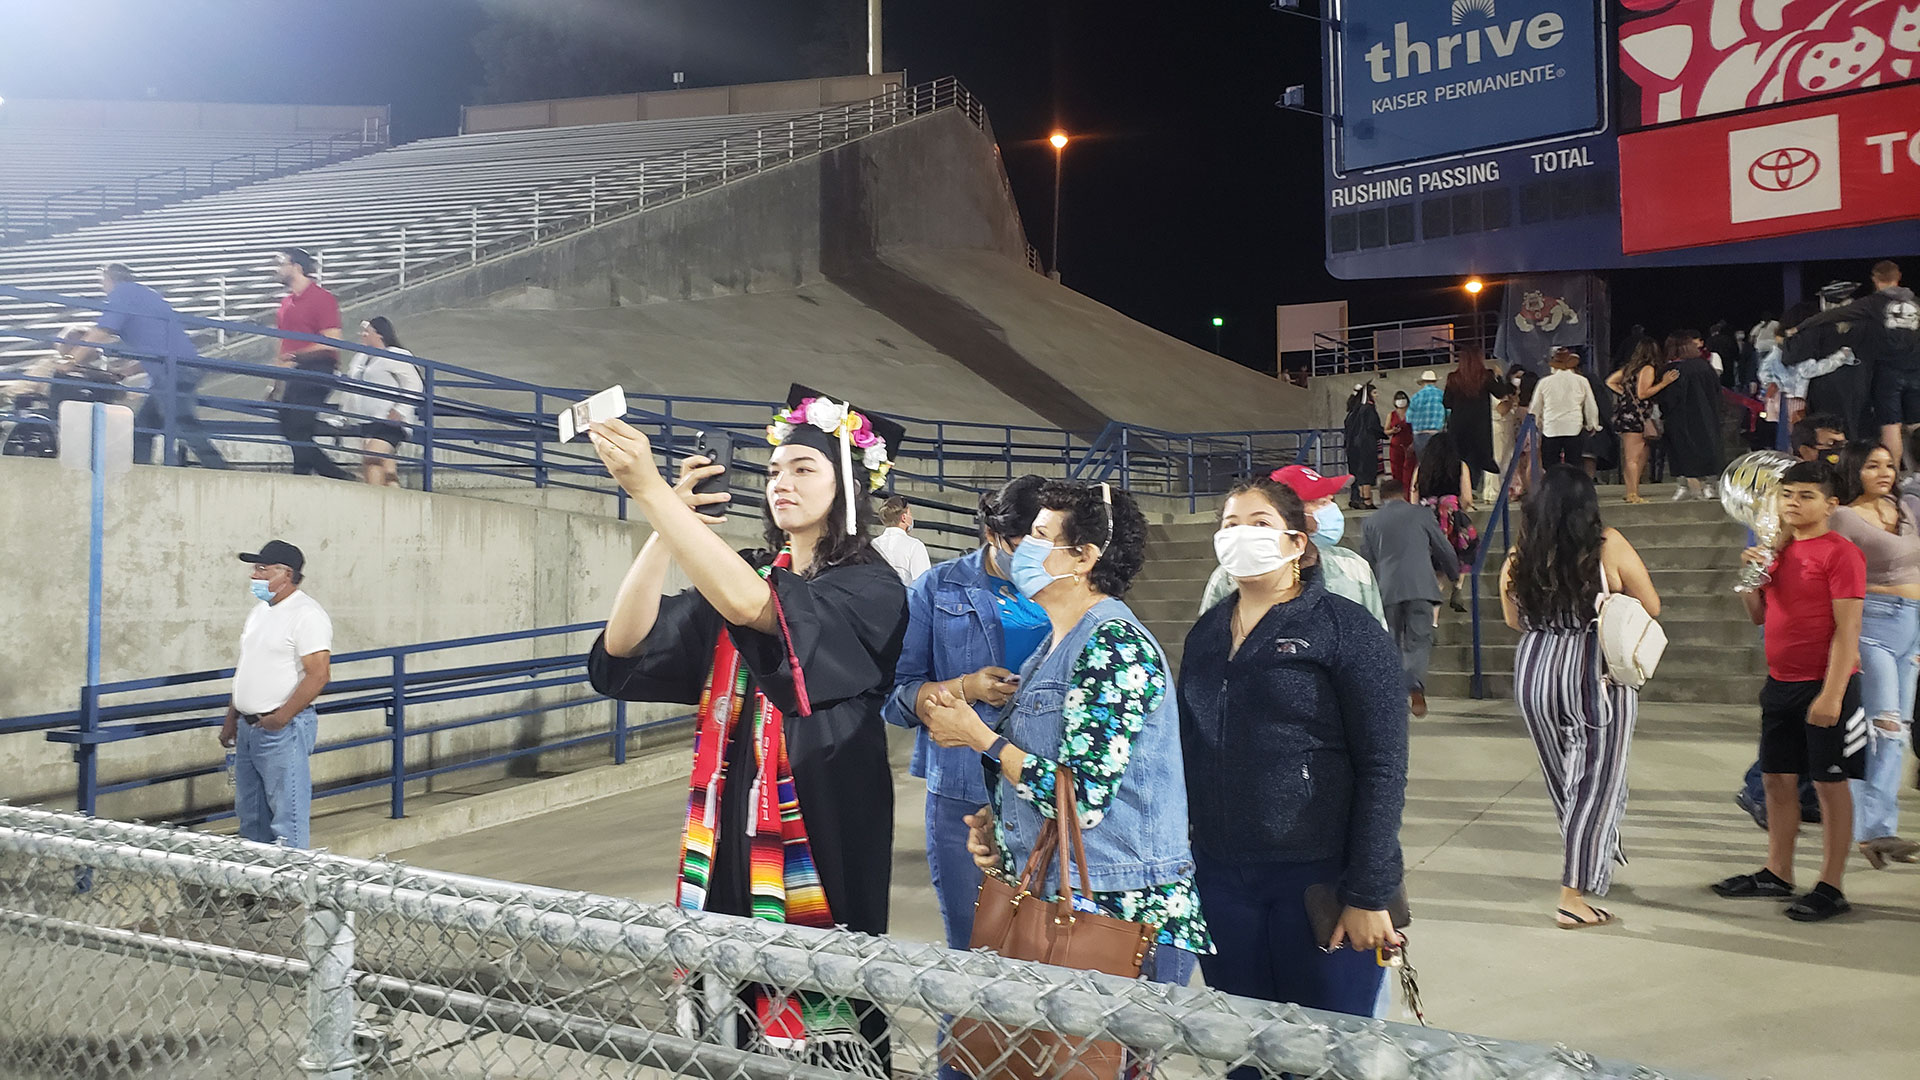 A student takes a selfie with loved ones after commencement.